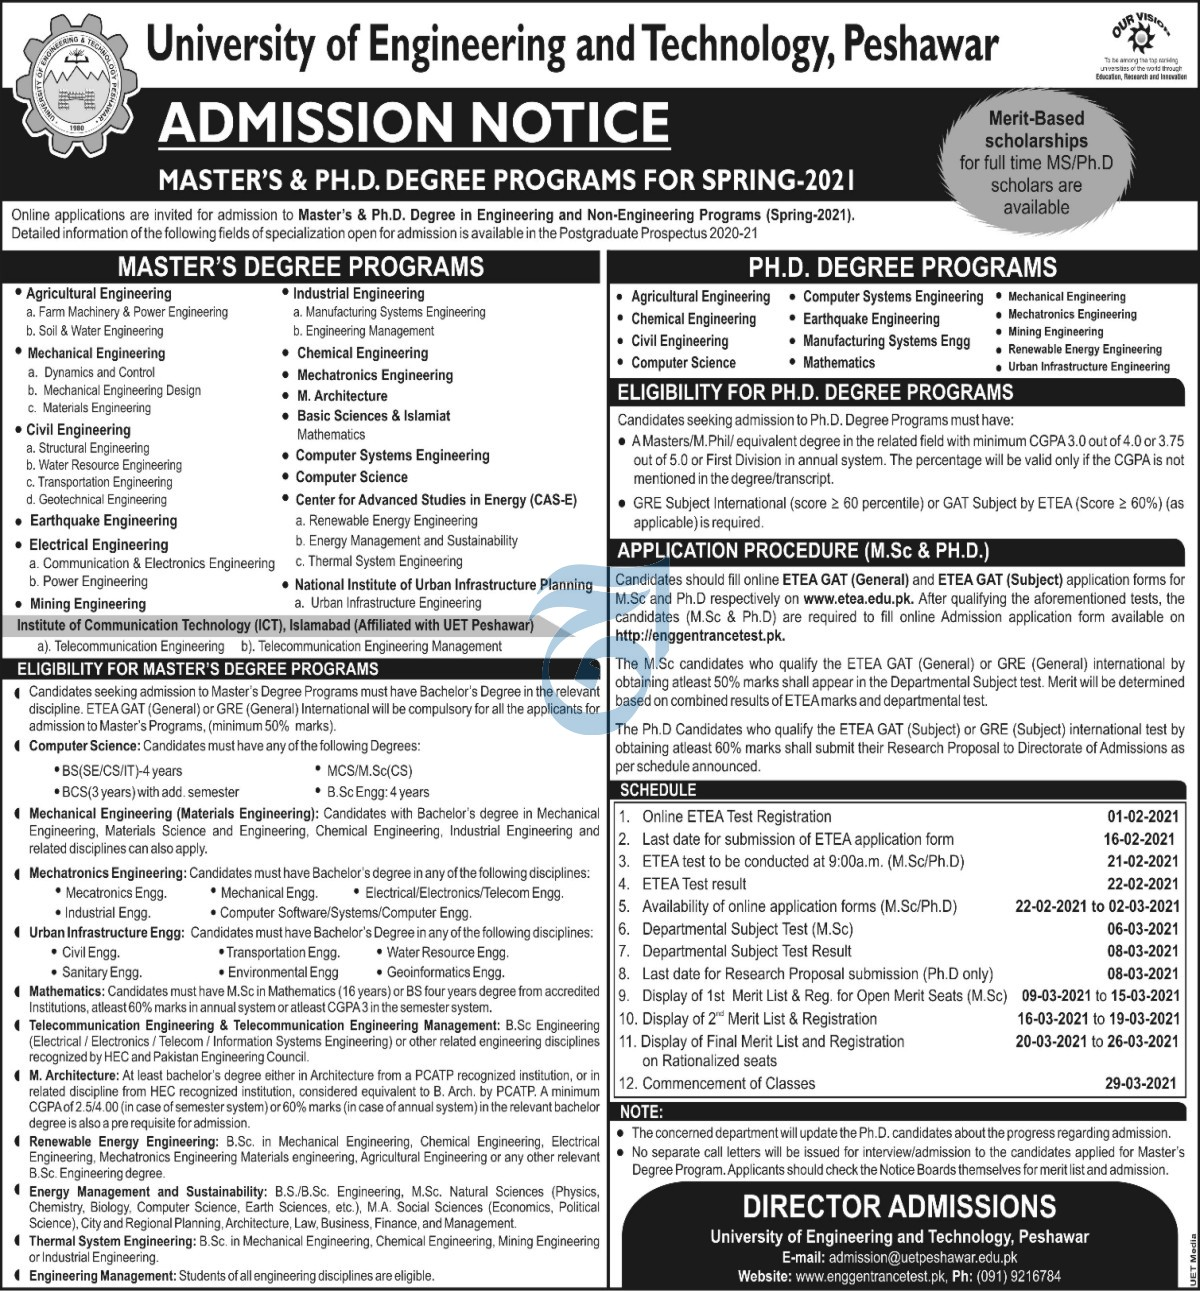 University of Engineering and Technology Peshawar Master & PhD Admission 2021